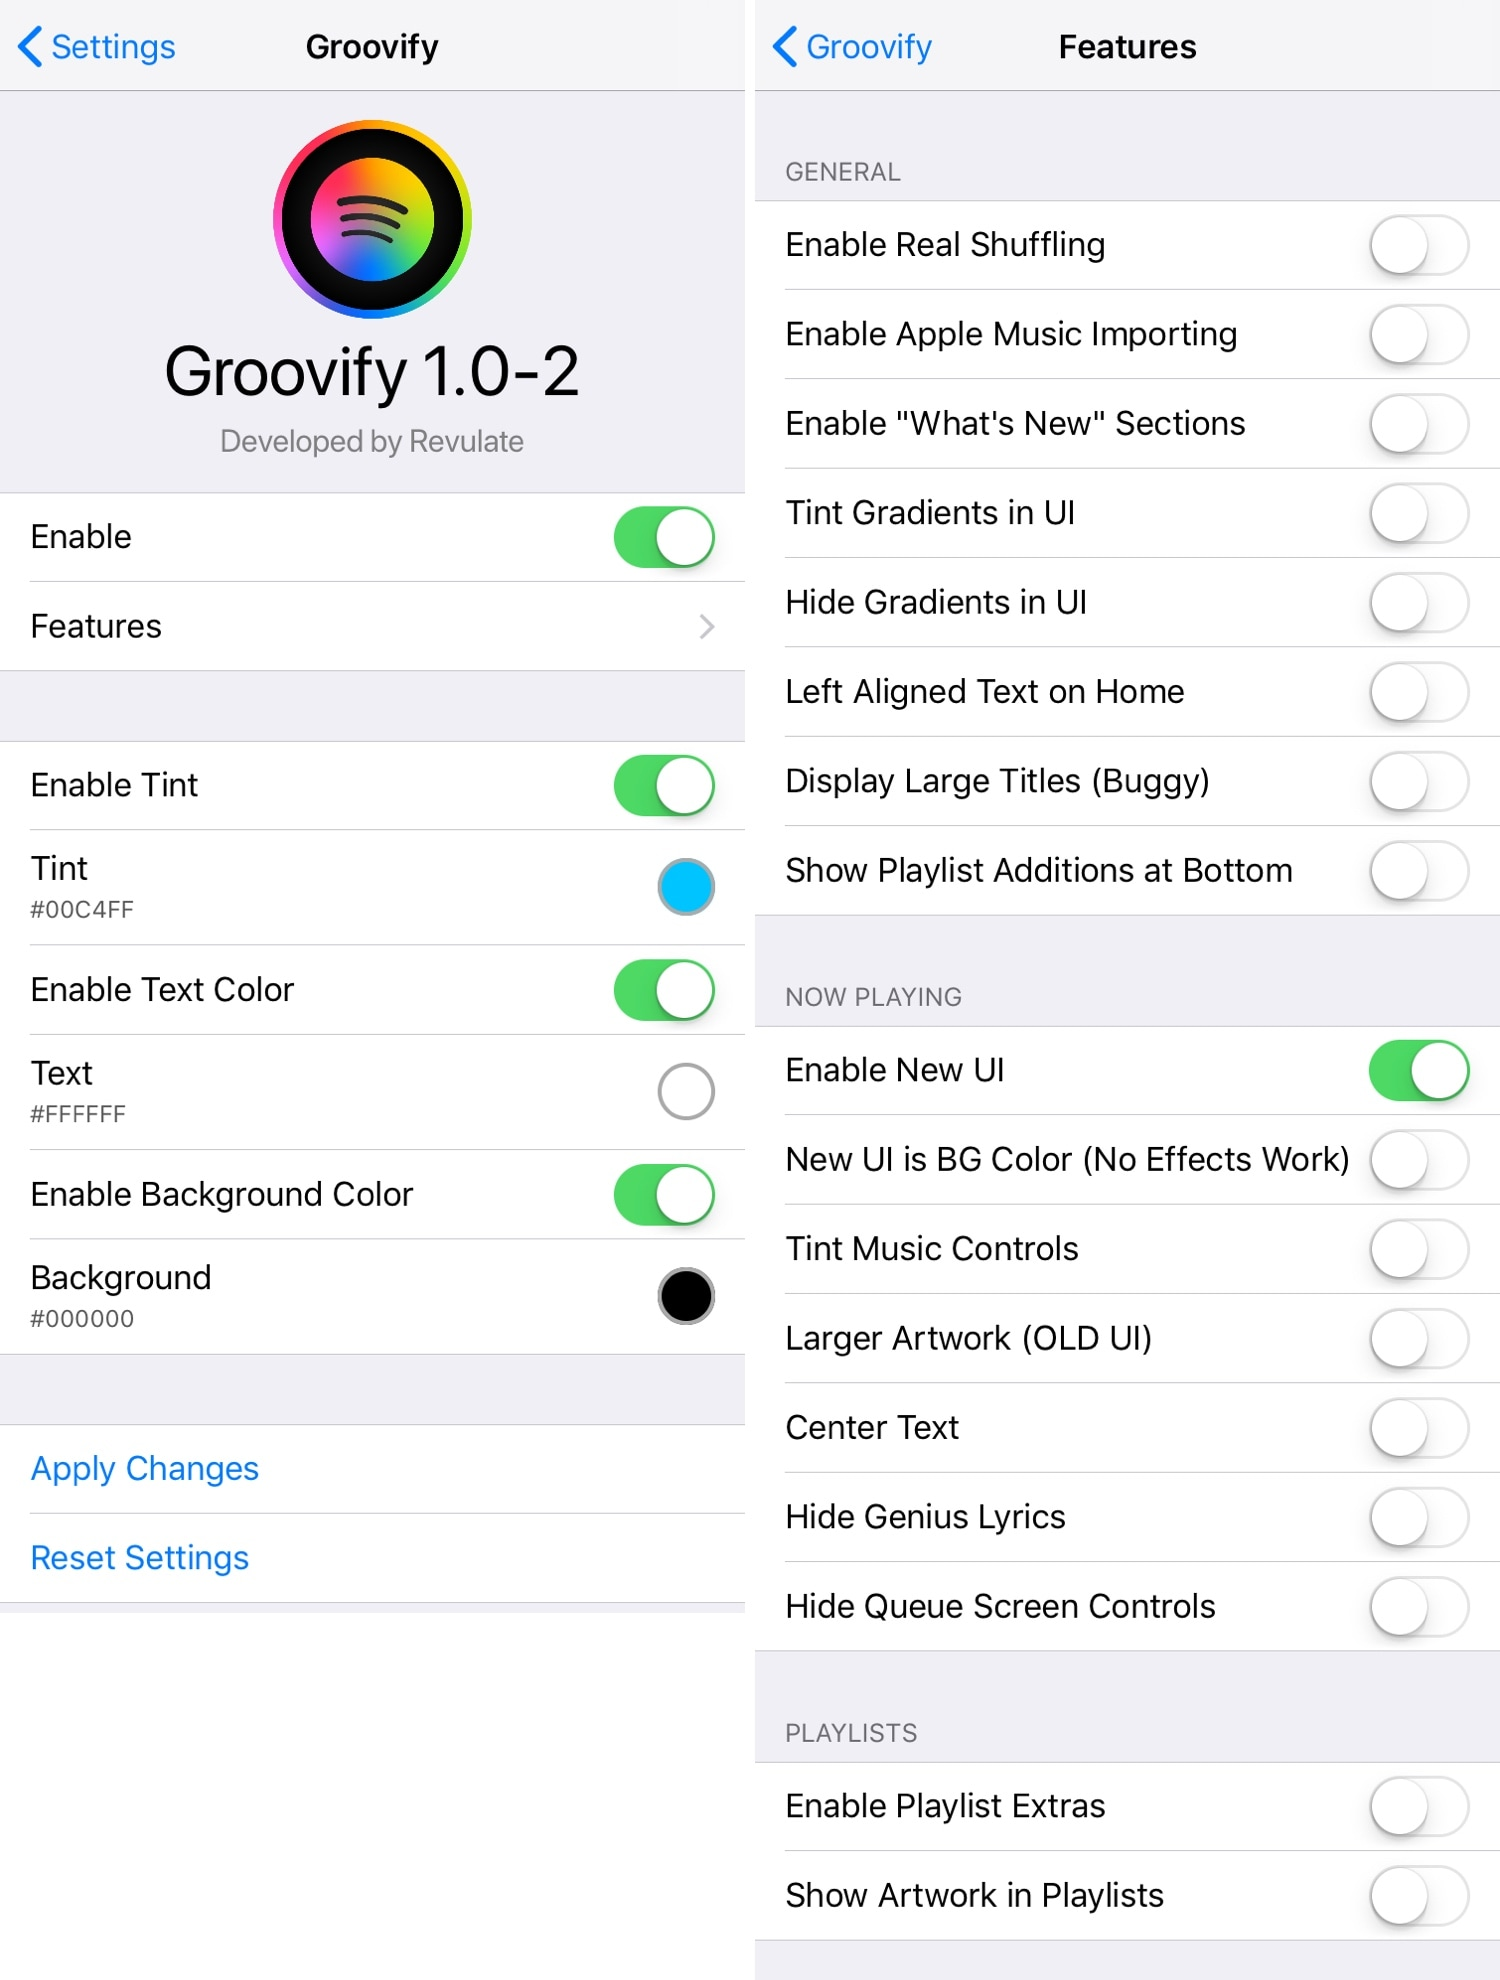 Groovify lets you customize the Spotify Music app without boundaries